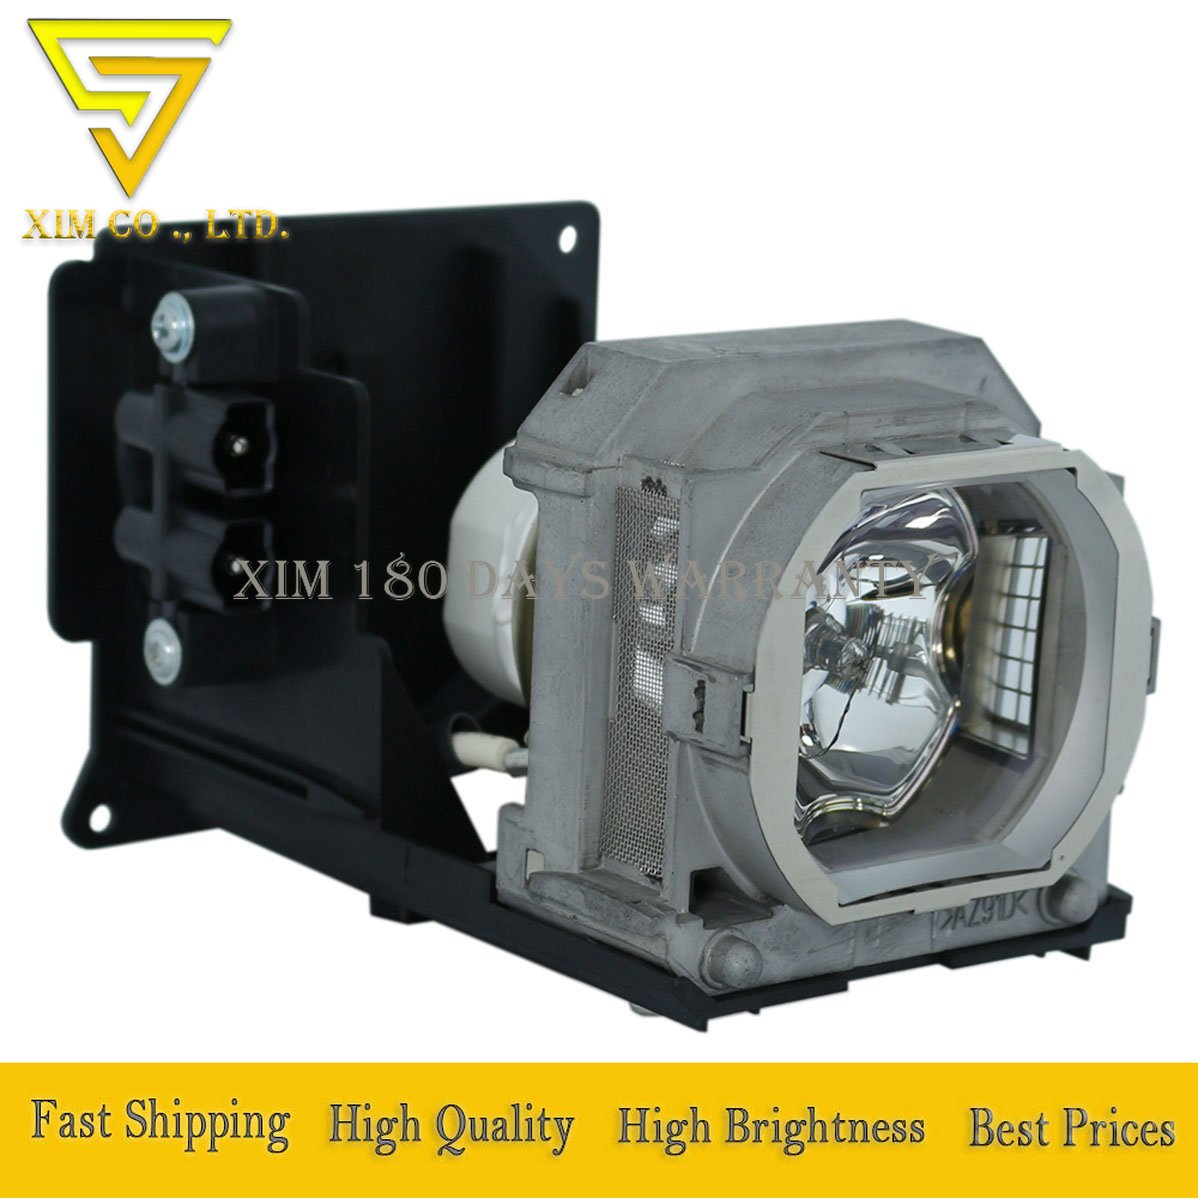 VLT-XL550LP Professional Replacement Projector Lamp Bulb With Mitsubishi XL550U XL1550 XL1550U XL550 LX-5280 XL1520 XL2550